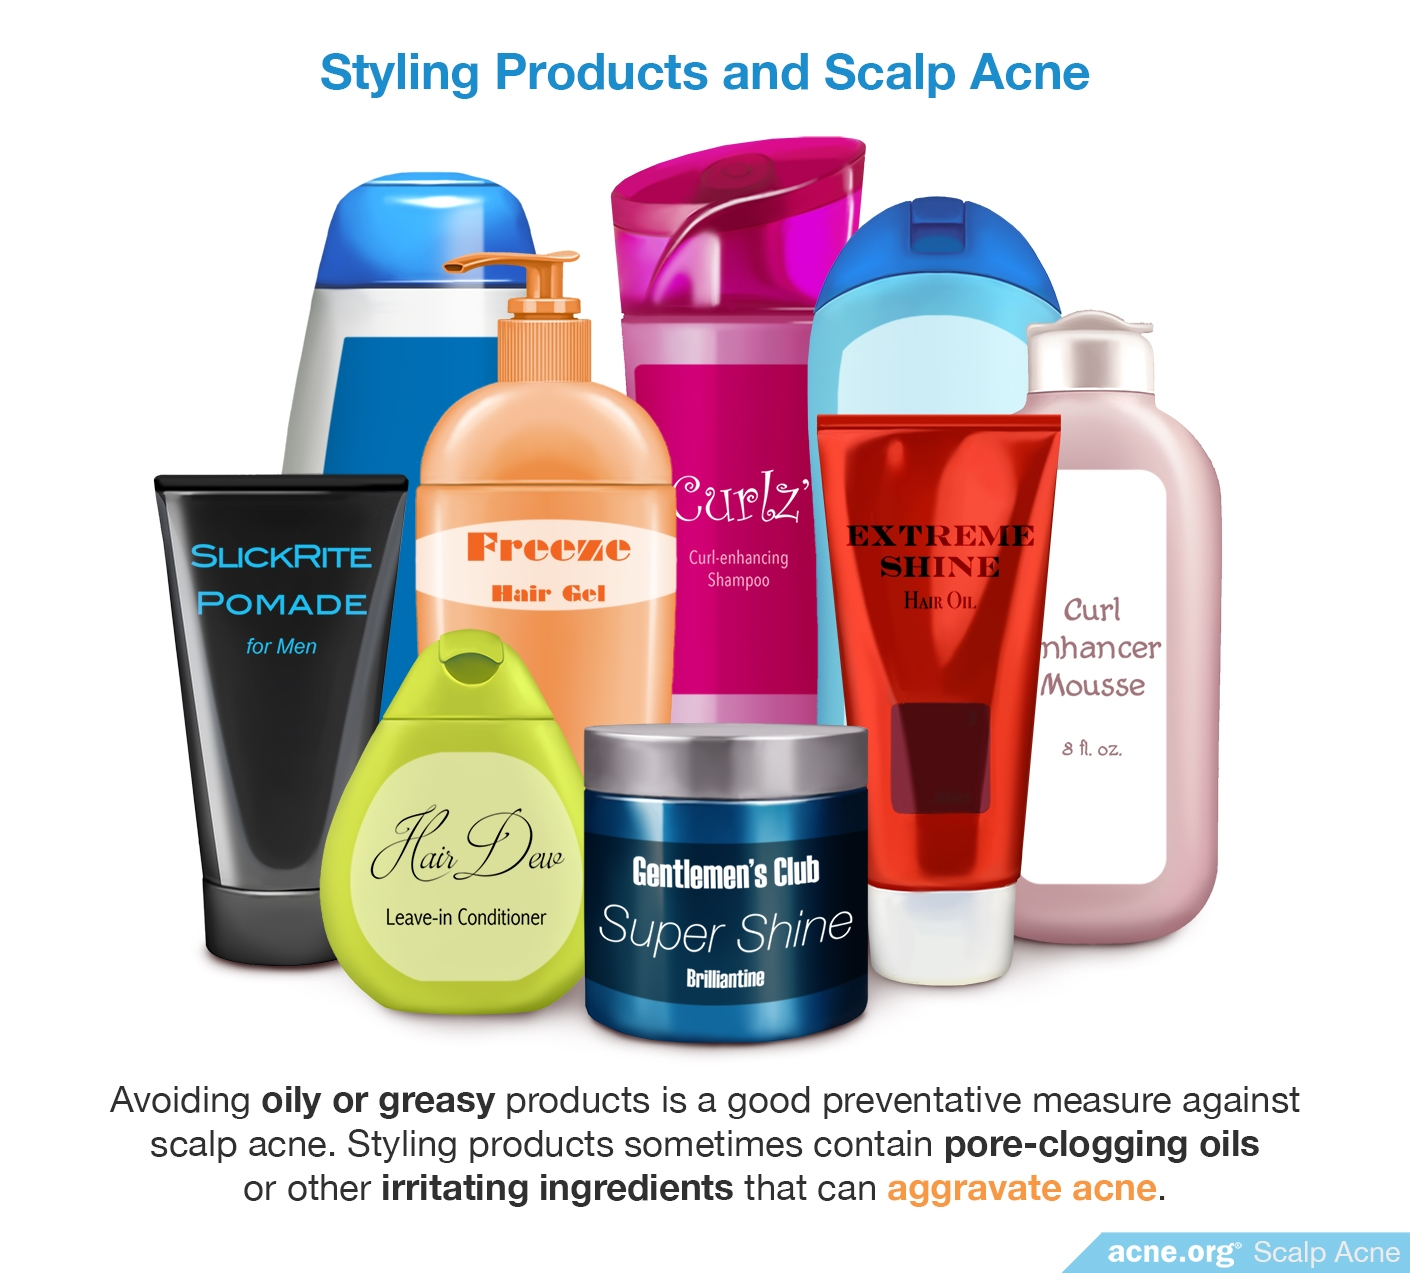 Styling Products and Scalp Acne - Acne.org